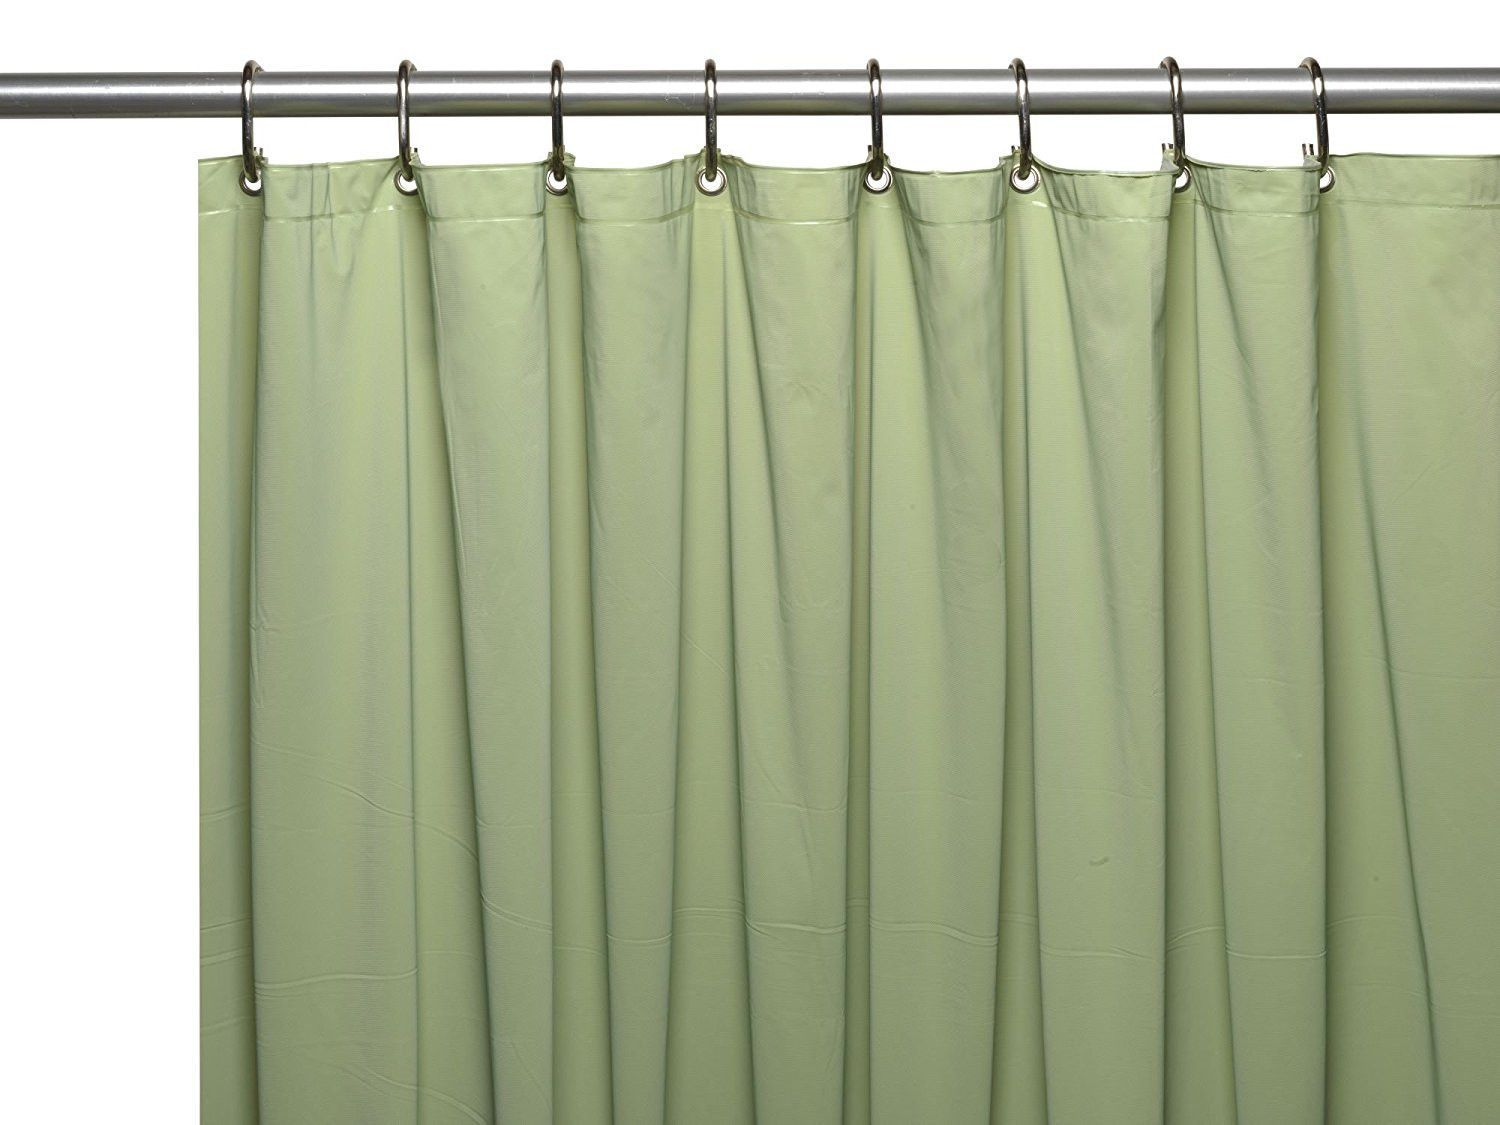 Royal Bath Heavy 4 Gauge Vinyl Shower Curtain Liner With Weighted